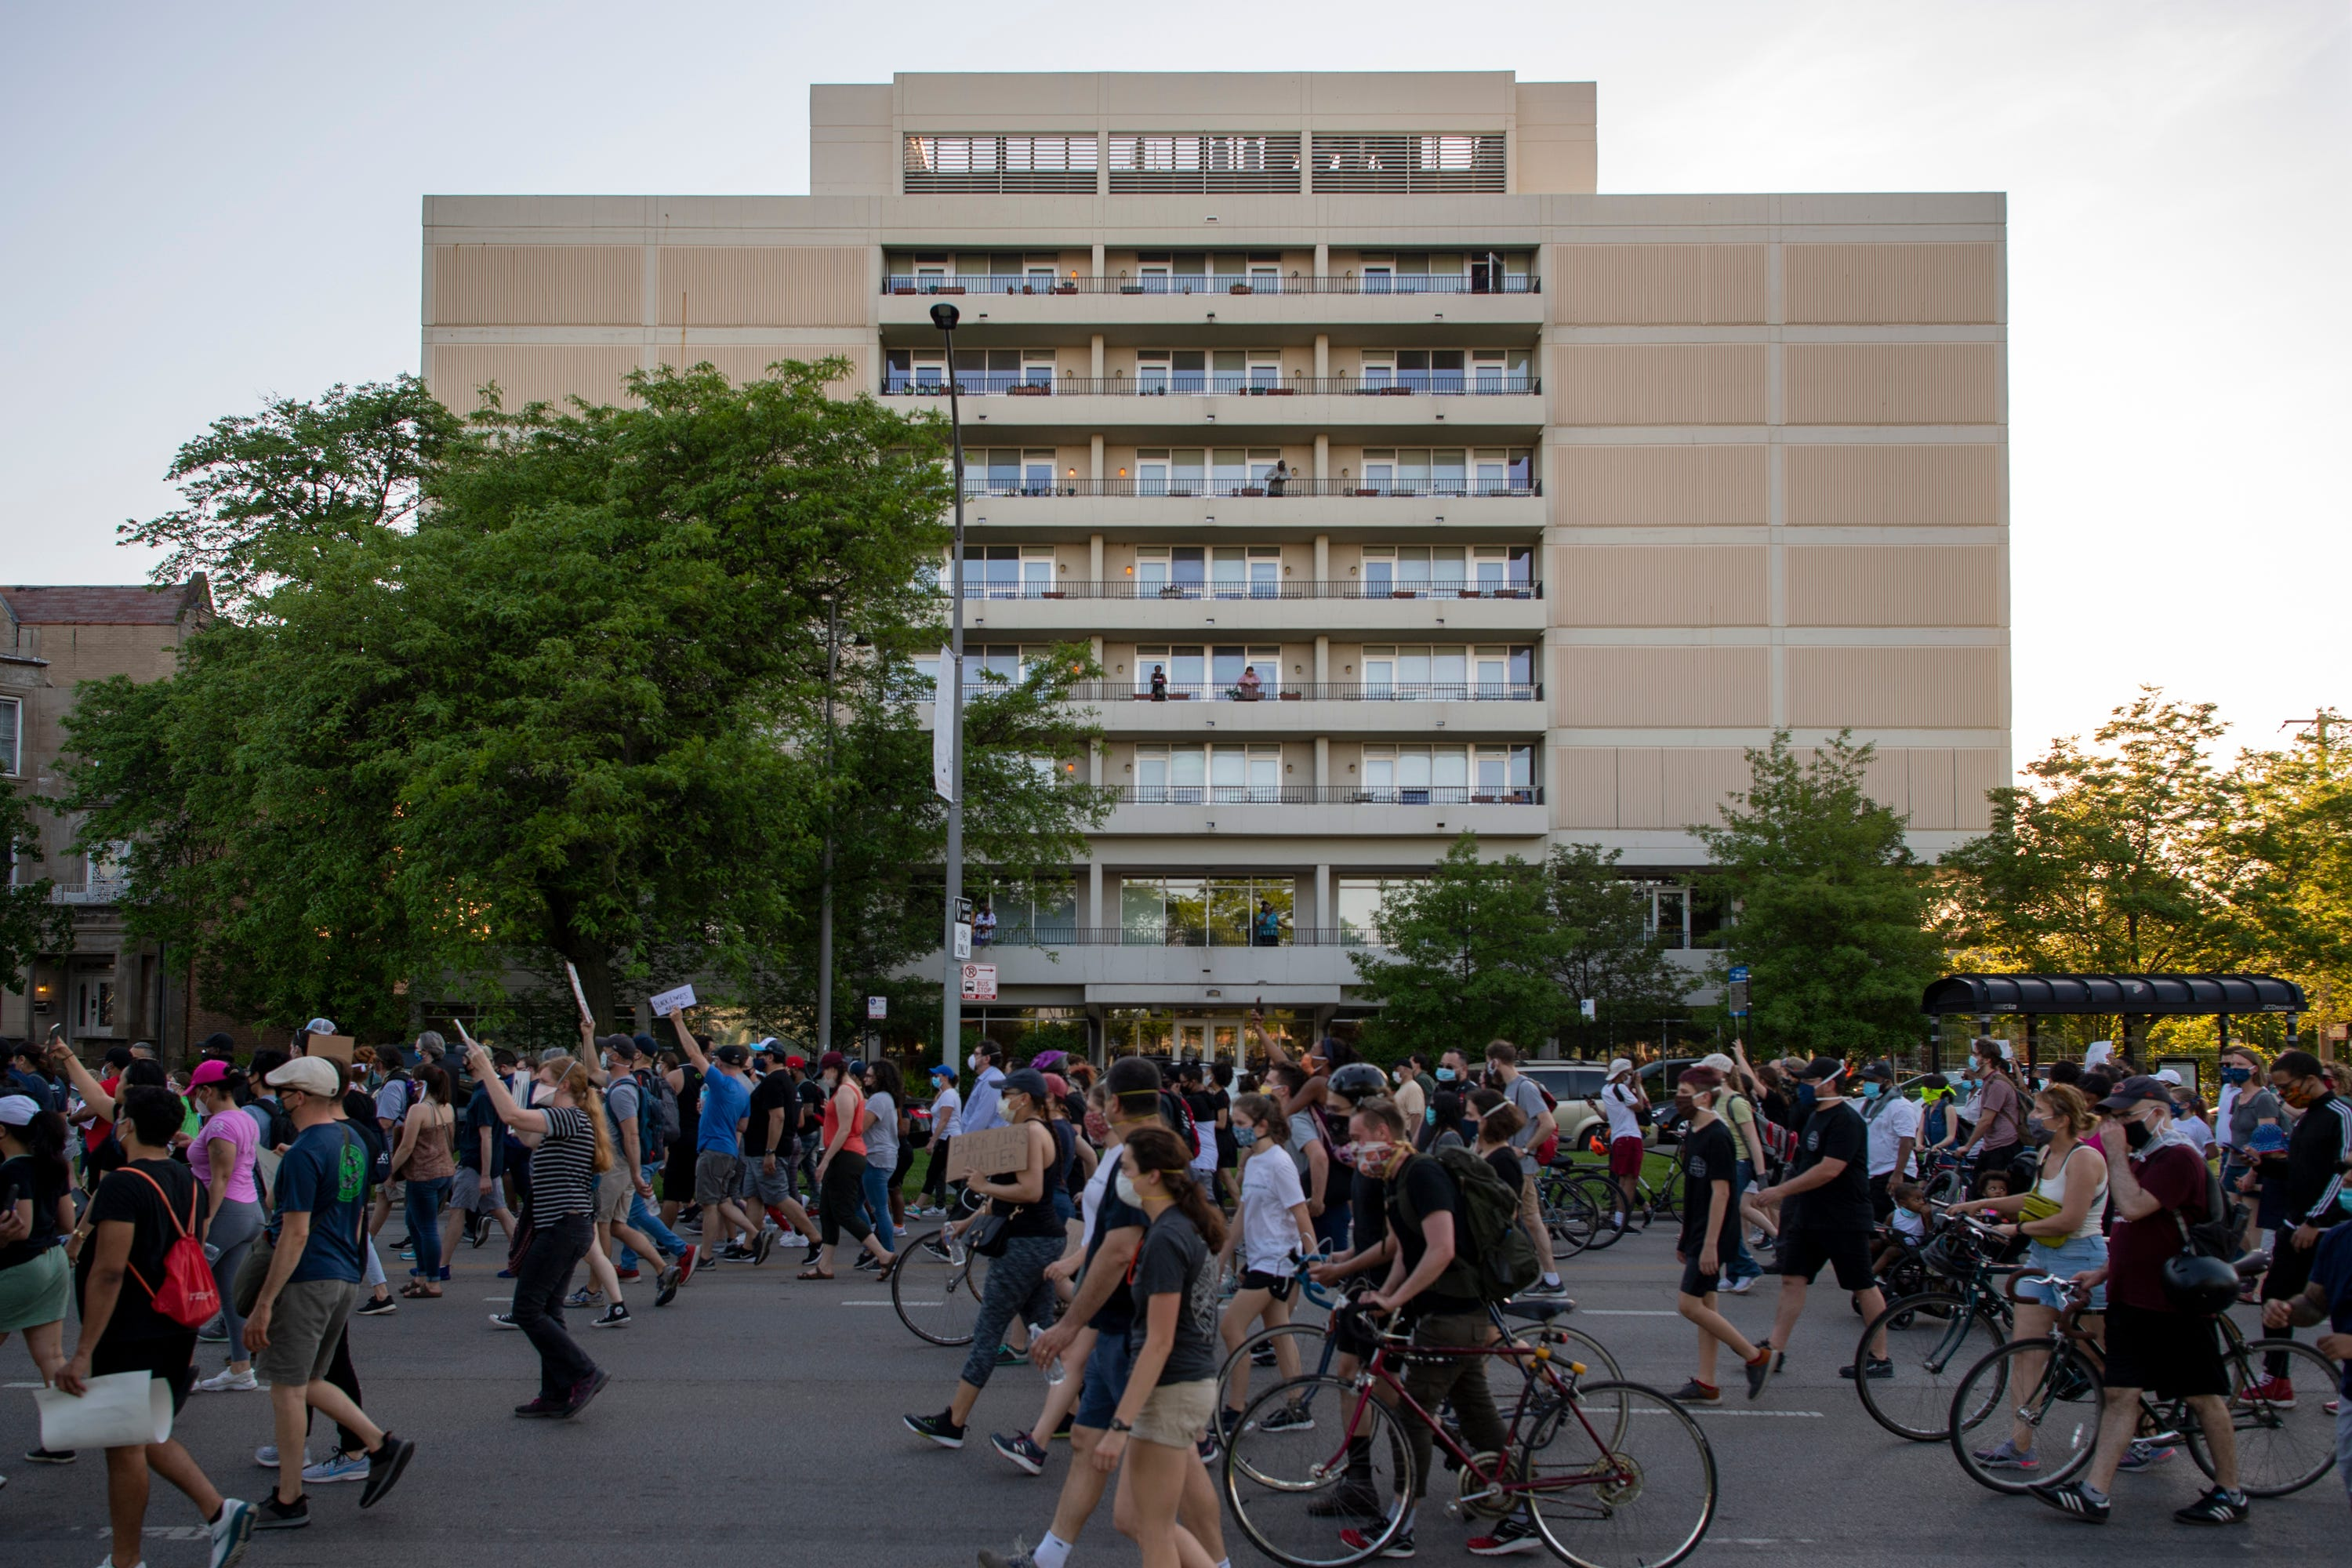 Protestors march down Martin Luther King Drive on the south side of Chicago on Jun 2, 2020.